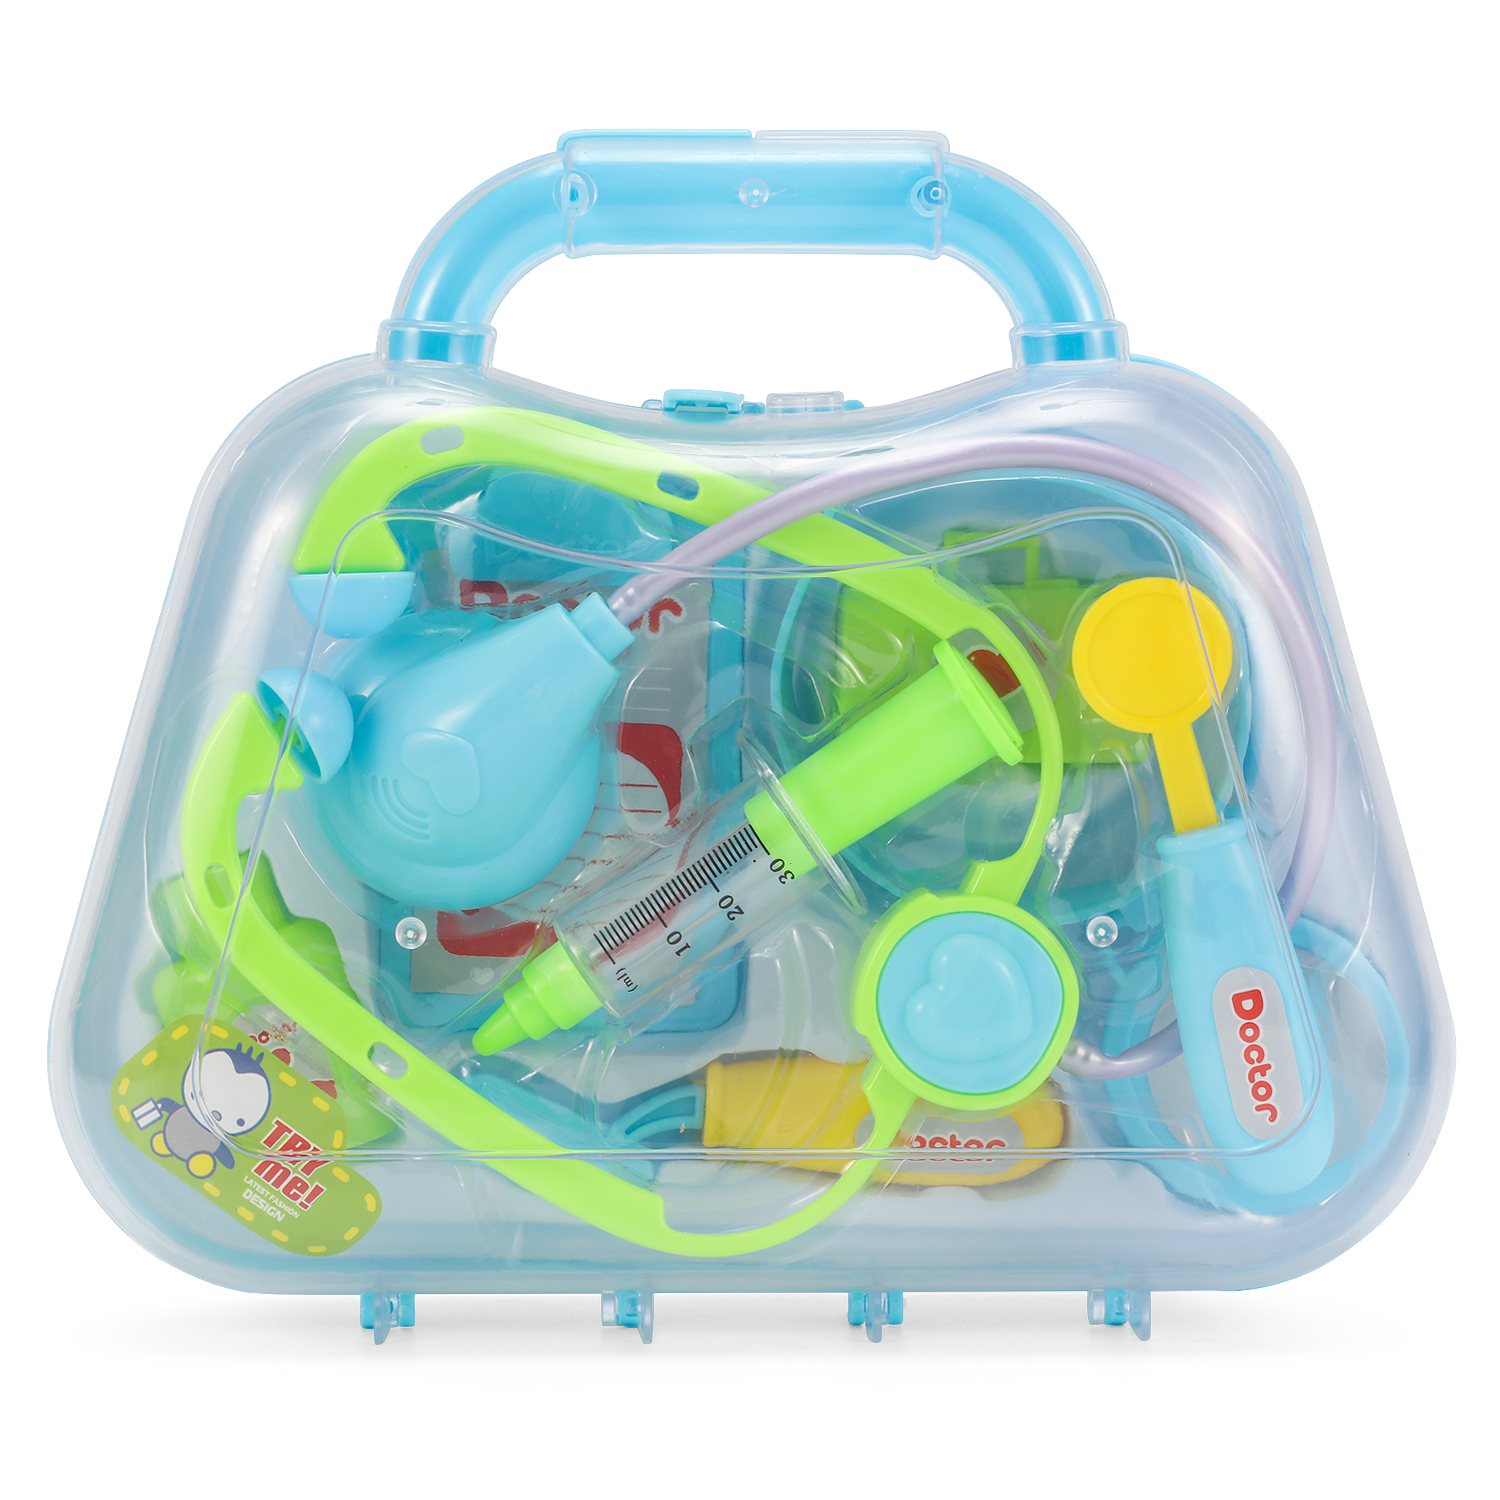 Fancynova Play Doctor Kit, Doctor Medical Kit Doctor Case Juguetes Roleplay Toy Set for Kids Children (Blue/Green /Pink)